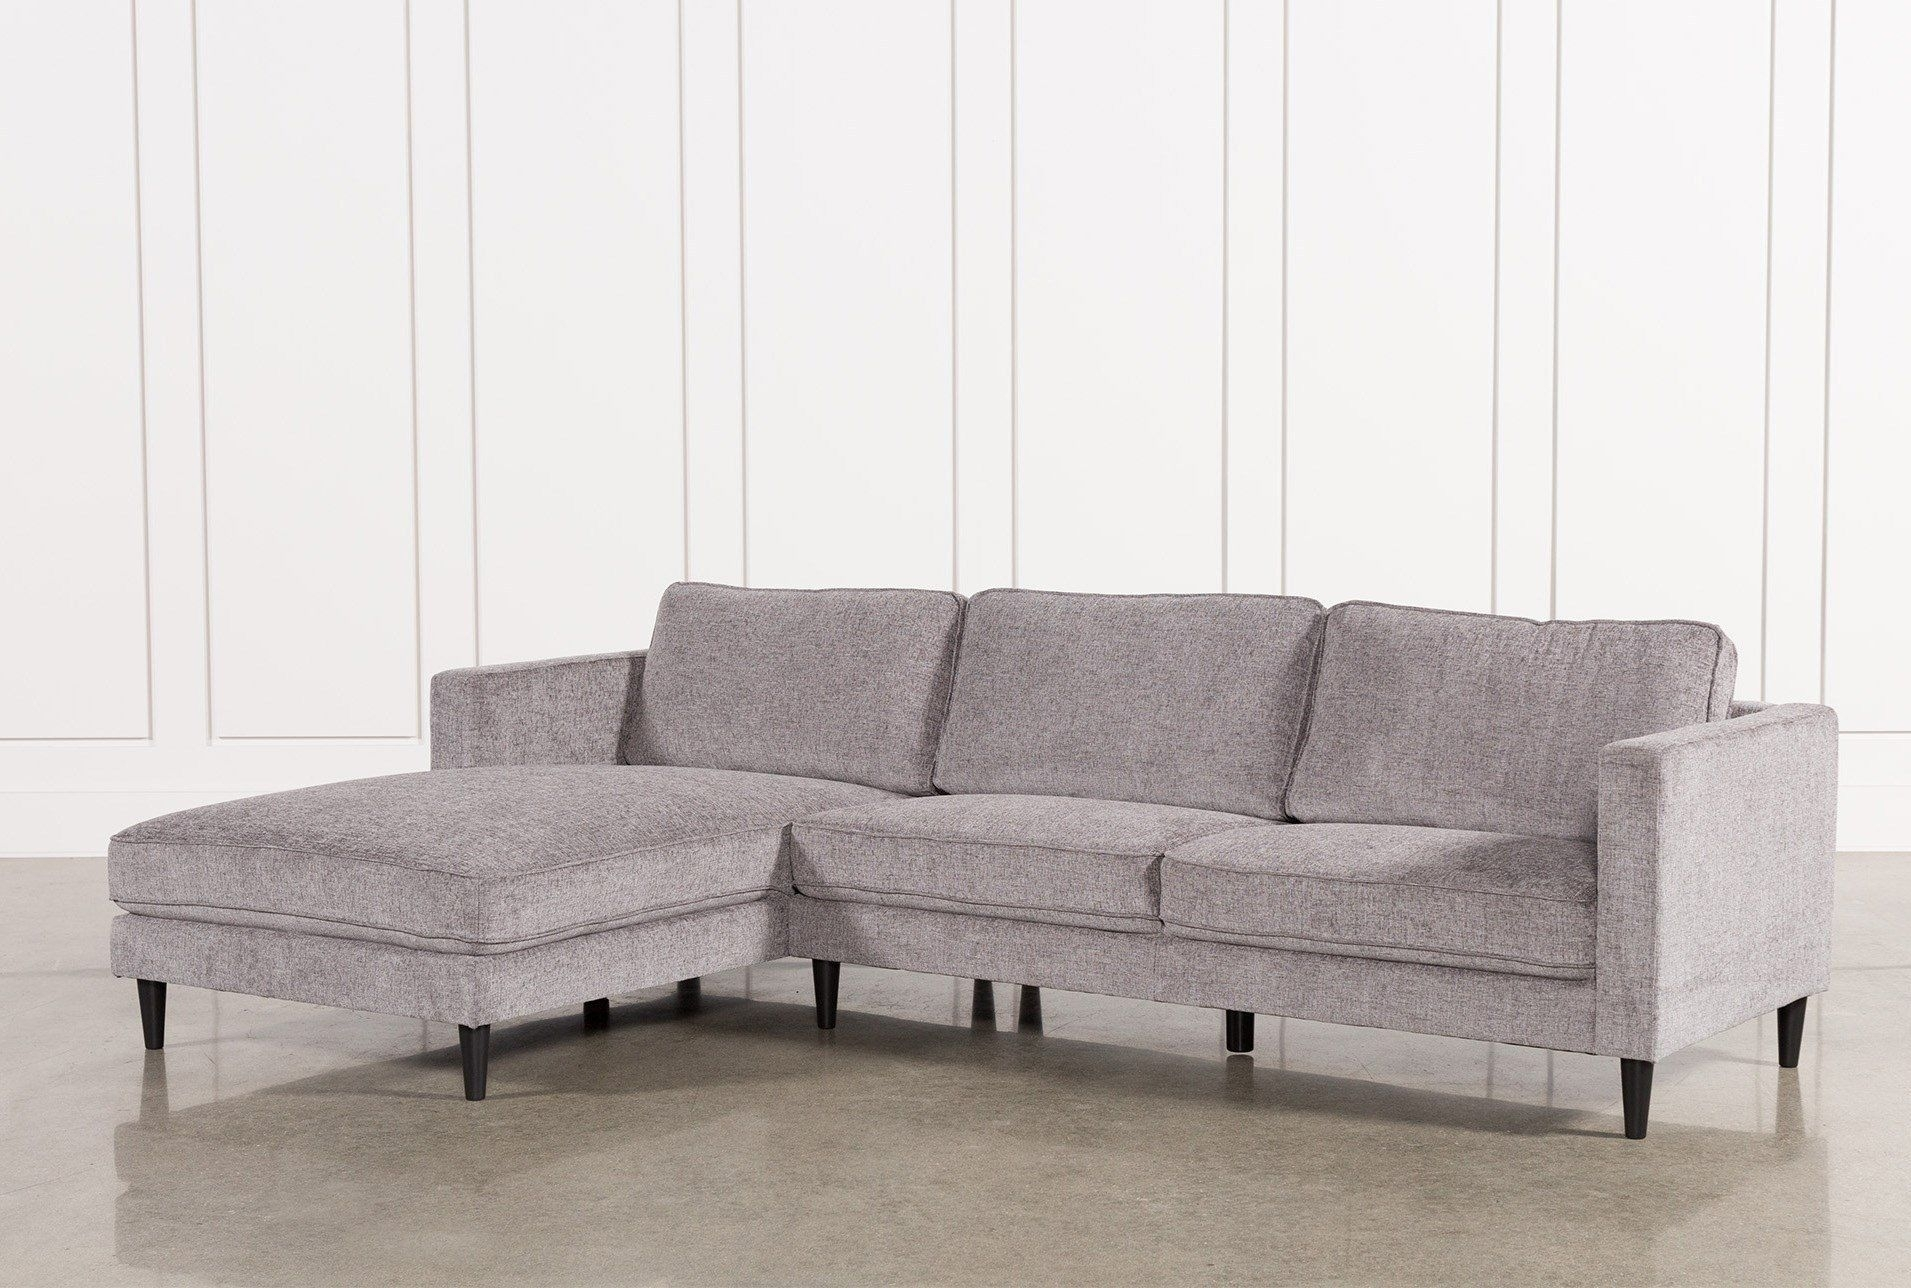 Cosmos Grey 2 Piece Sectional W/laf Chaise | Couches | Pinterest For Egan Ii Cement Sofa Sectionals With Reversible Chaise (View 10 of 25)